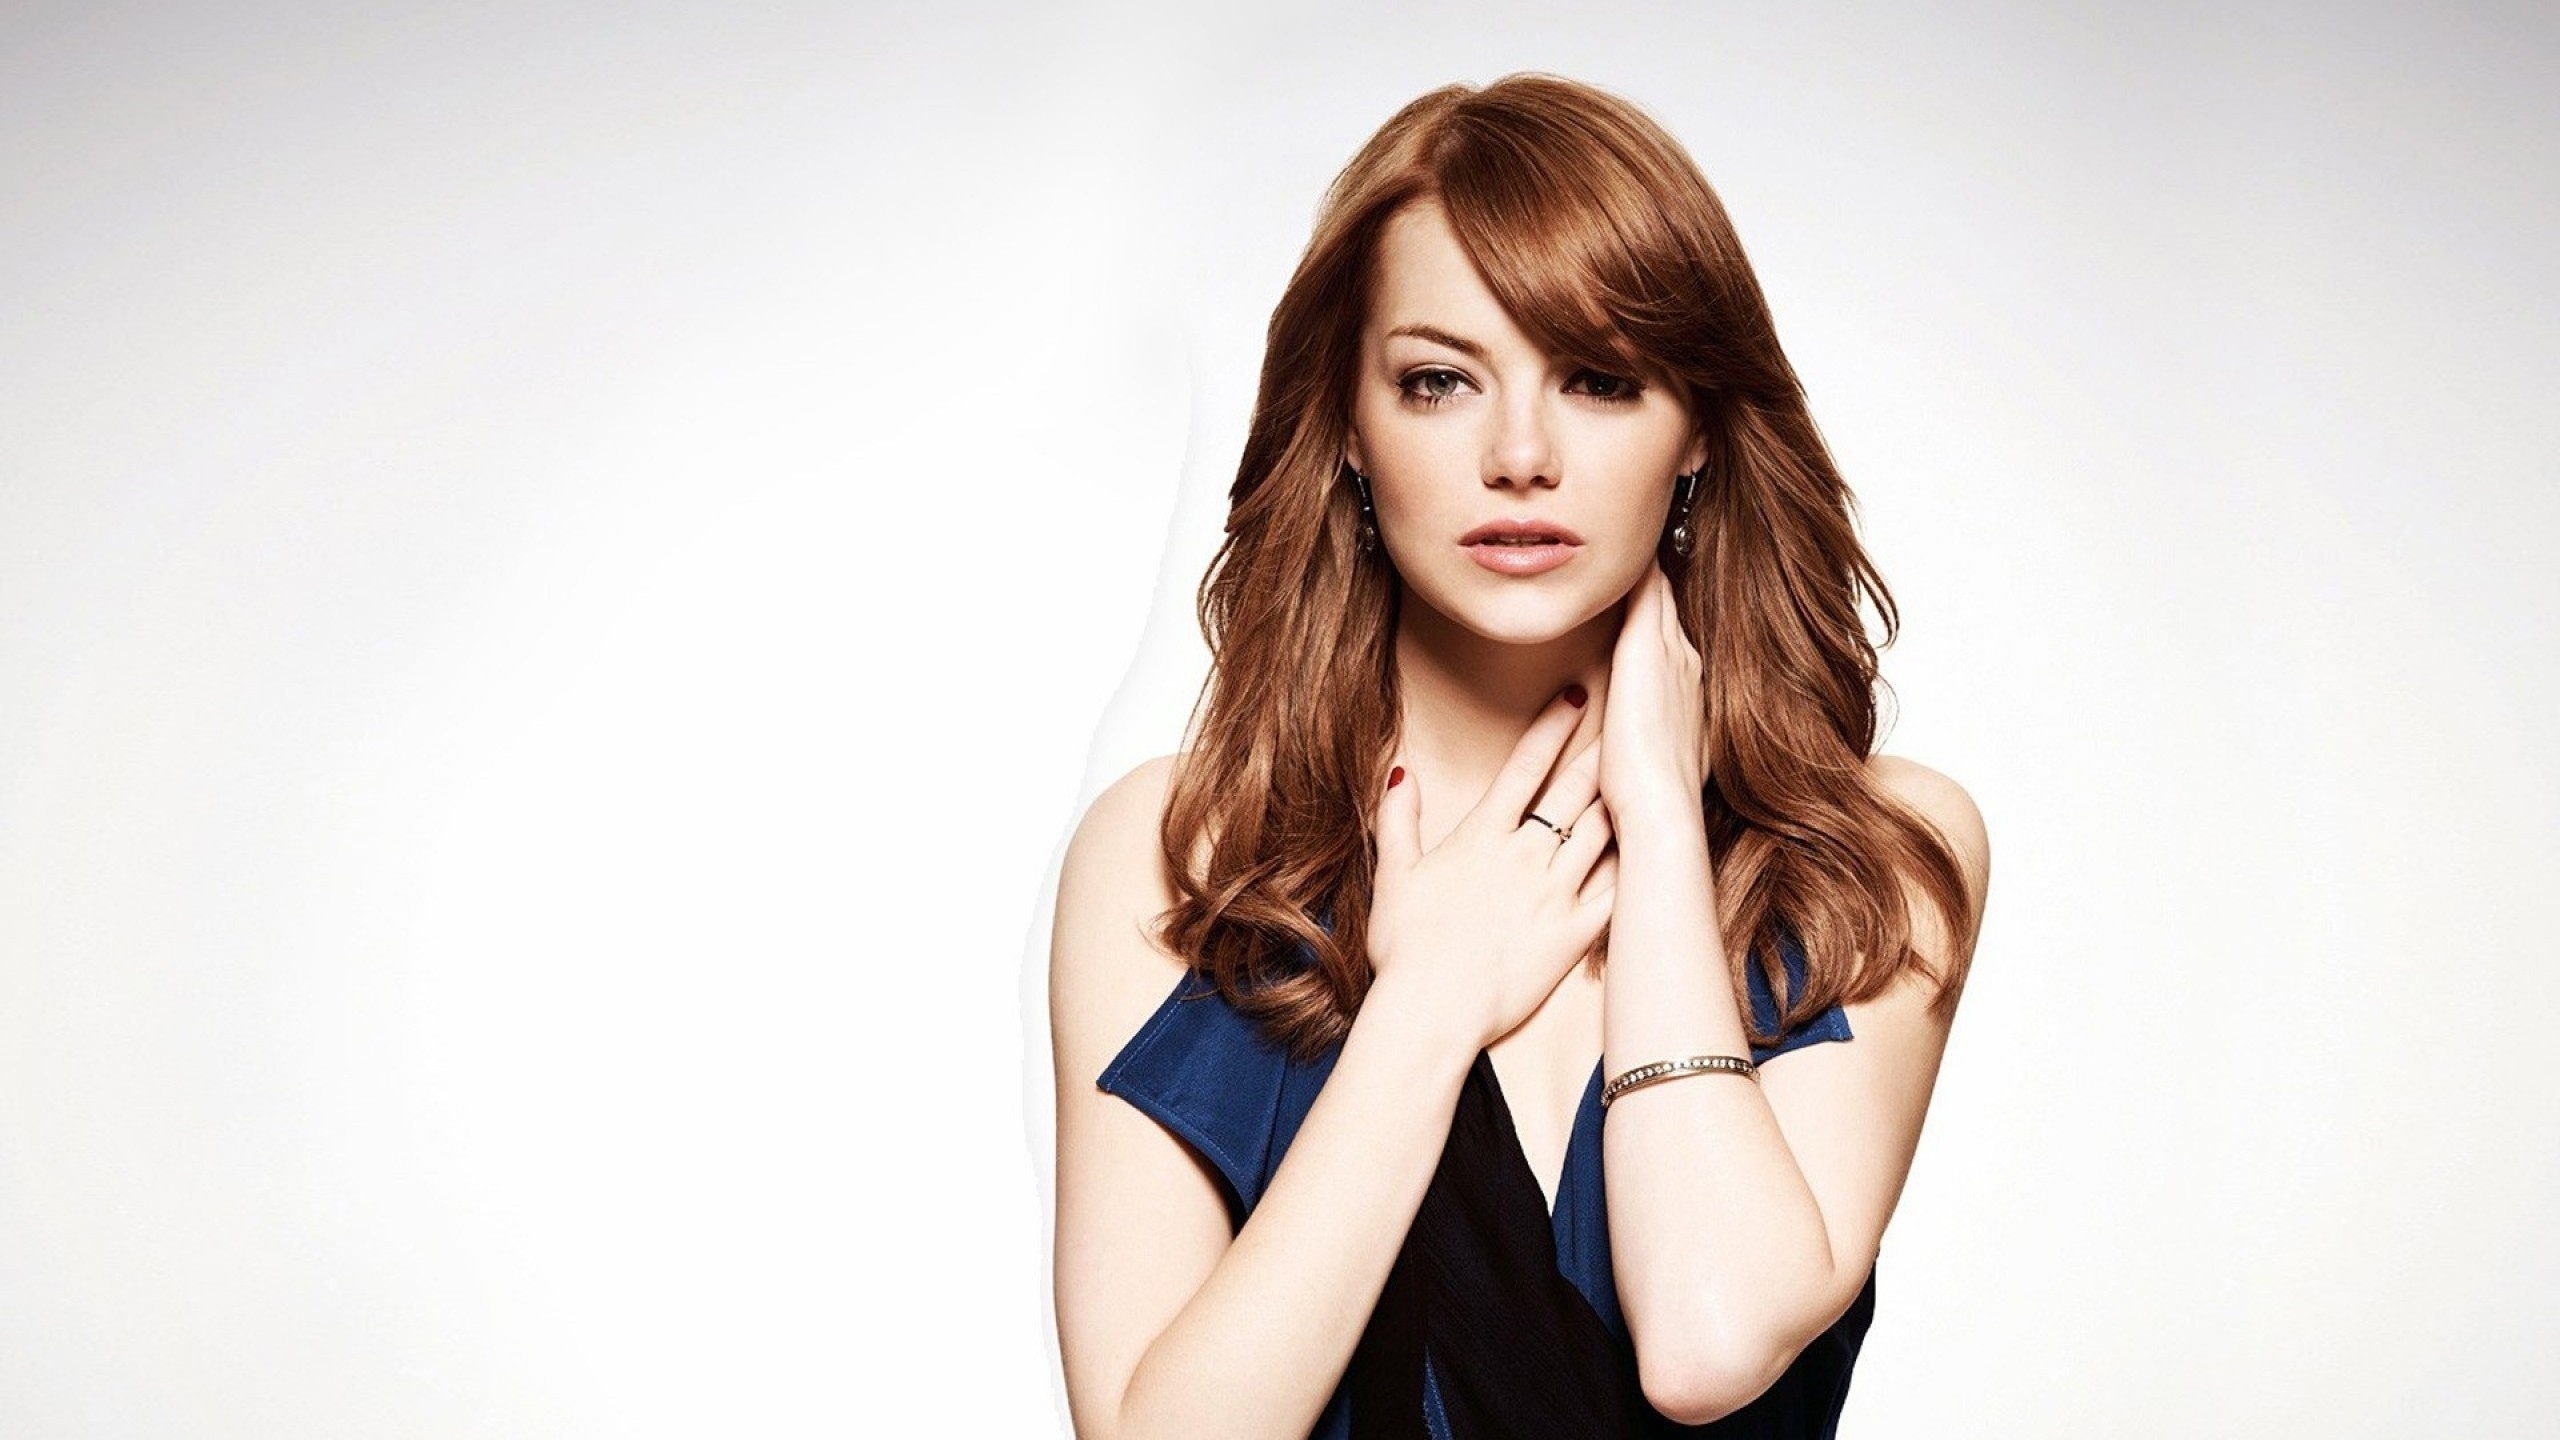 Hd Emma Stone Wonderful Stylish Pose Still Mobile Background Free Download Images